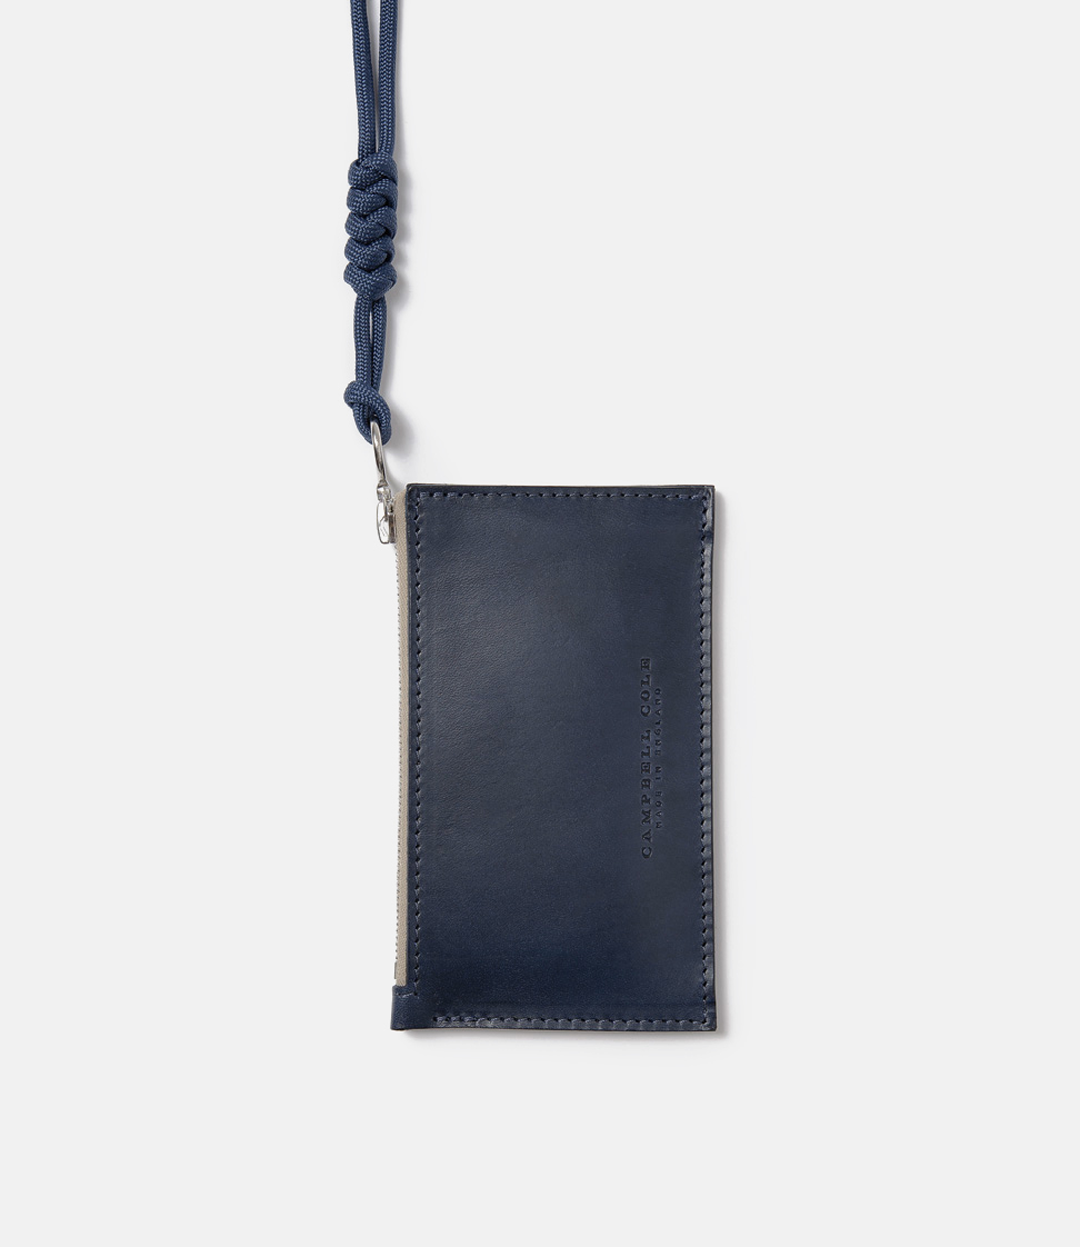 Campbell Cole. CampbellCole. Simple Collection. Simple Coin Pouch. Lanyard. SimpleCoinPouch.Navy. Banton Frameworks